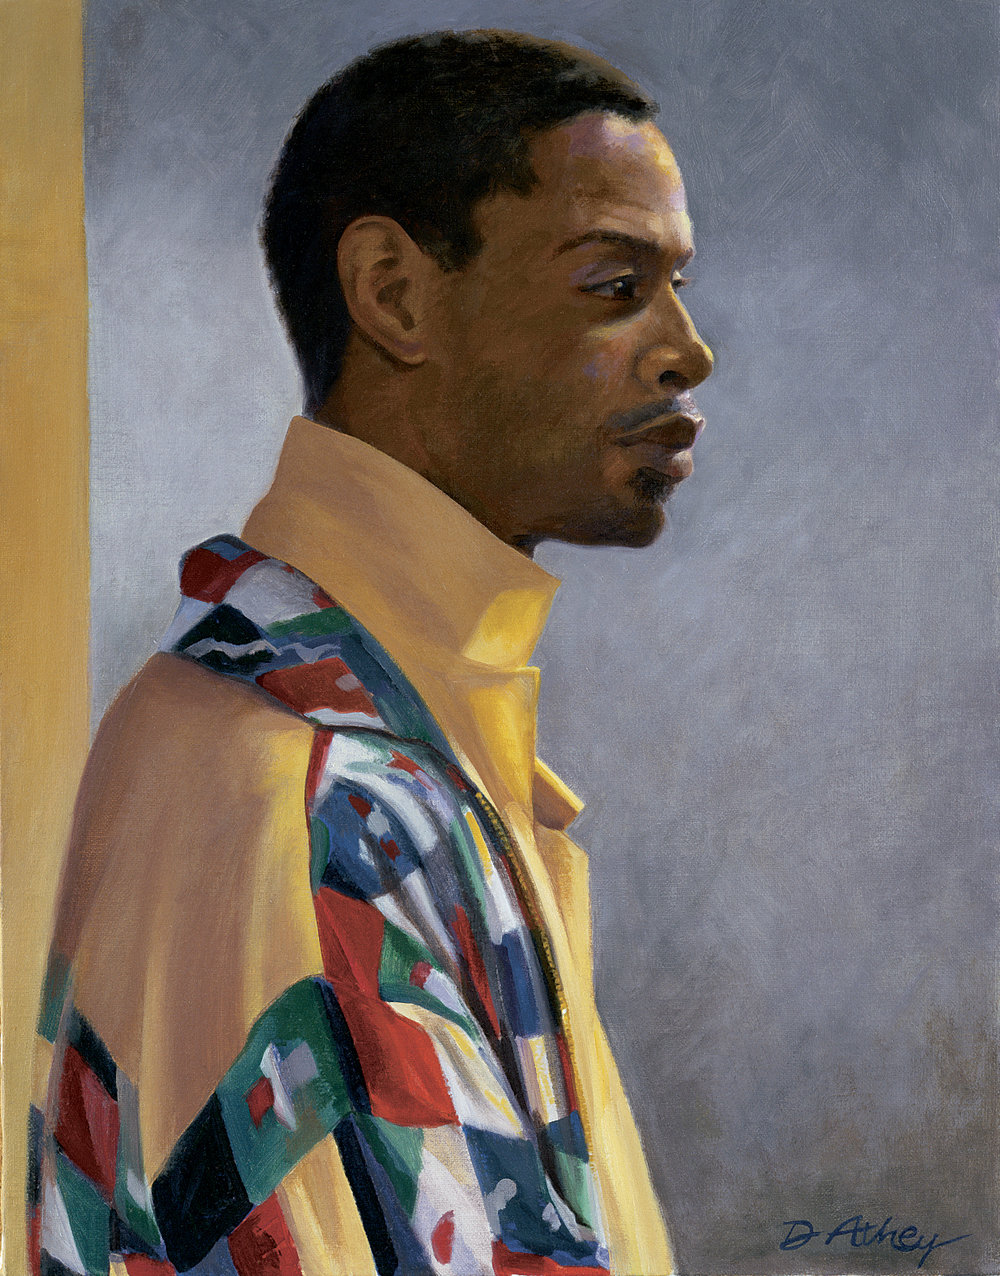 """The Multi-Colored Coat"" 2002, 20x16"", Oil on Linen"